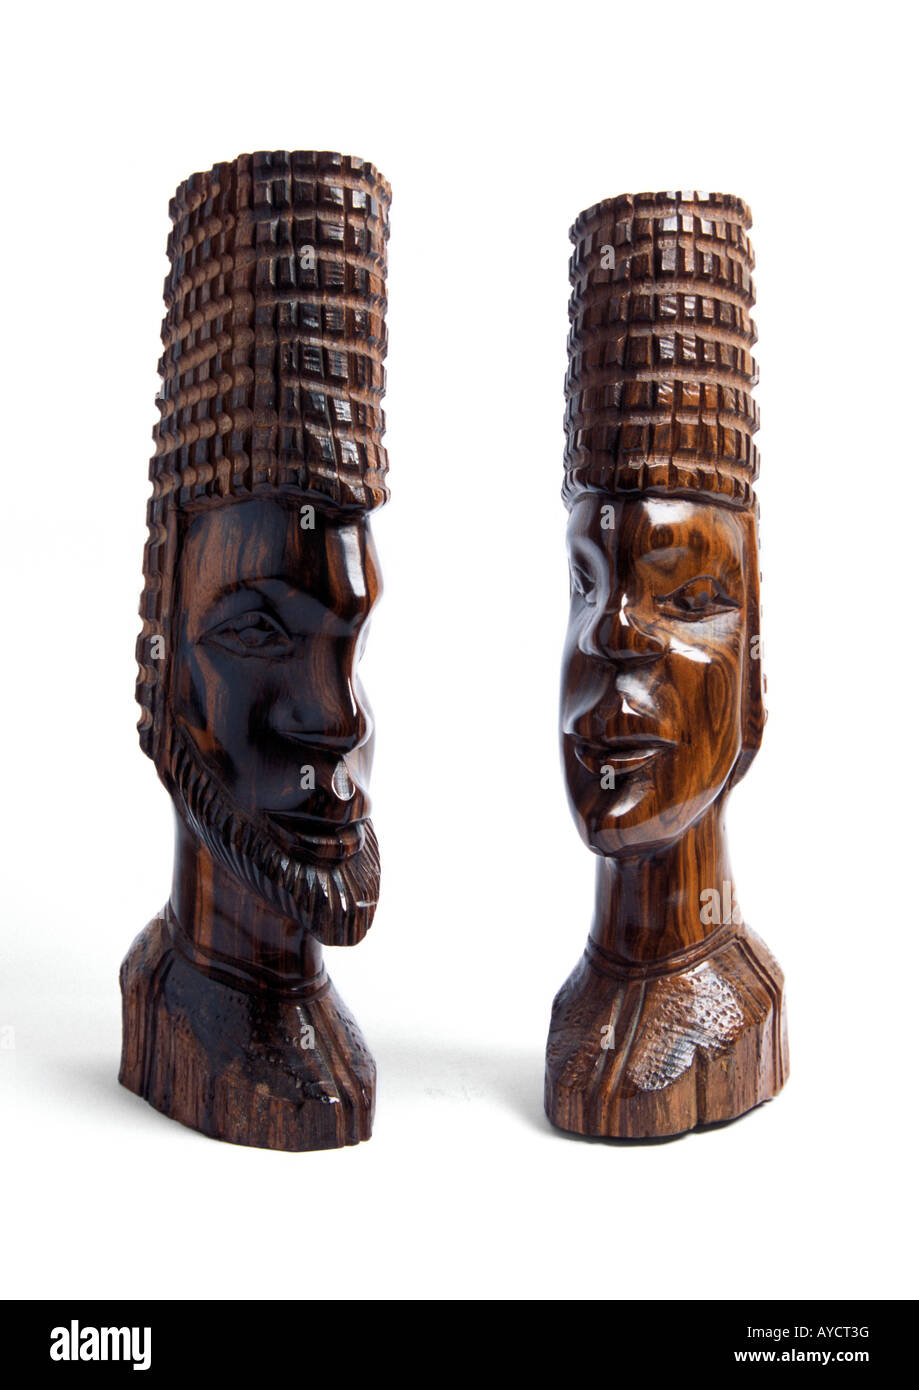 Pair of Ghanaian wooden head busts on white background - Stock Image